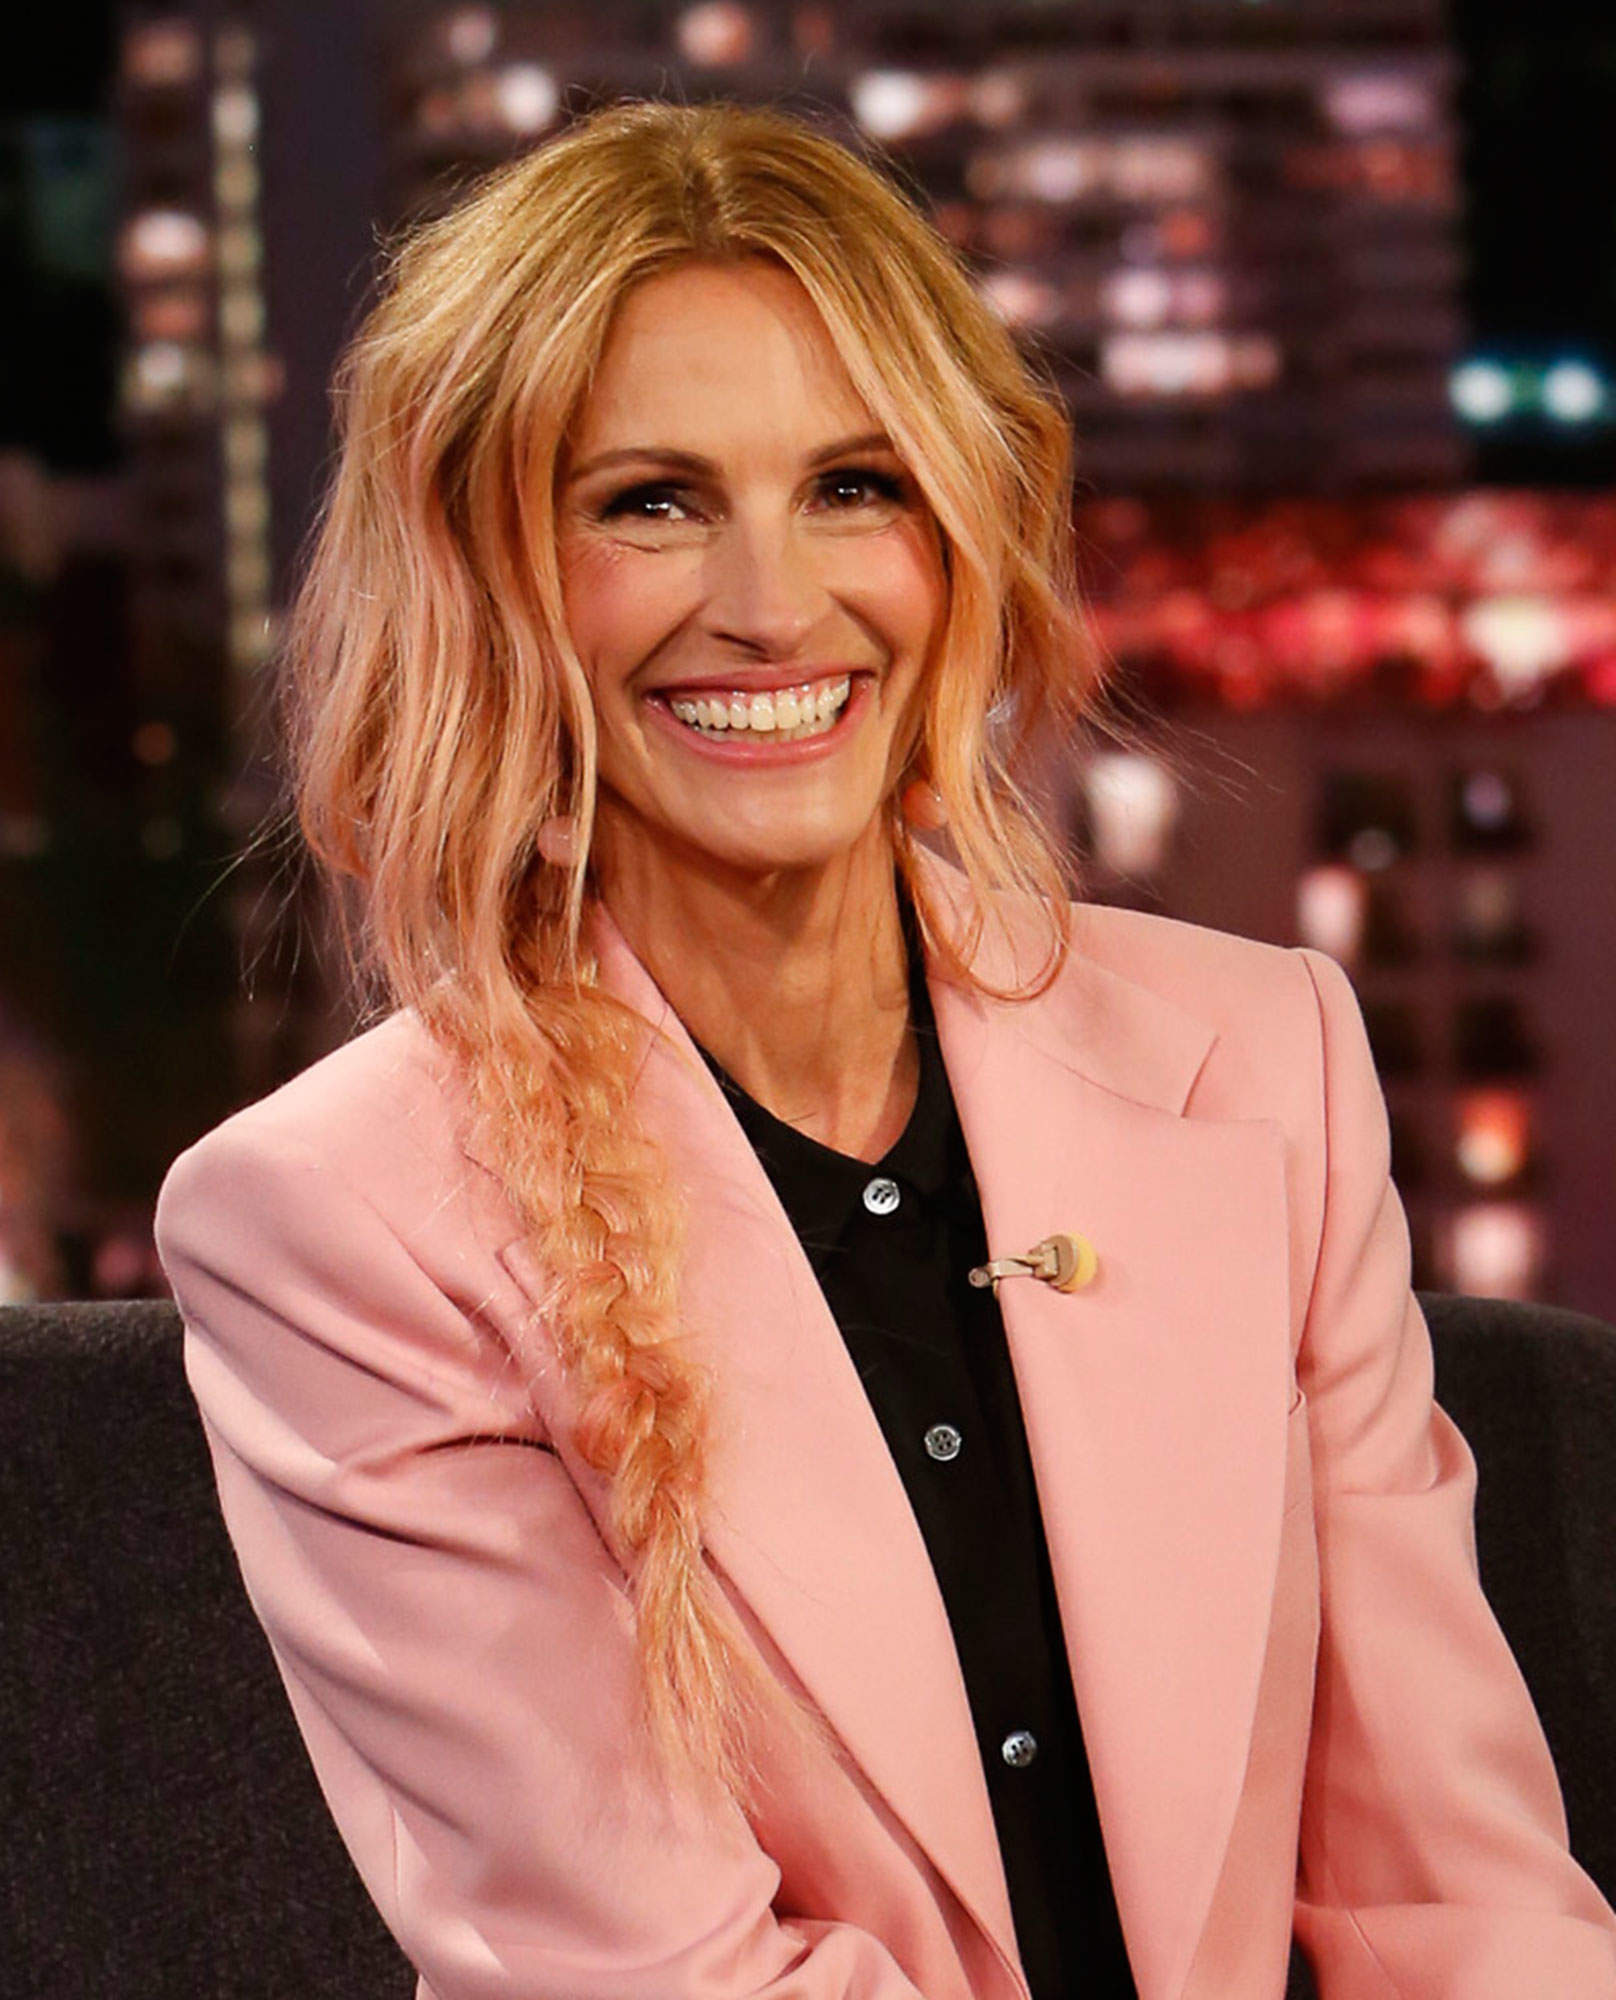 Julia Roberts Got a Gorgeous New Haircut That Everyone Is Freaking Out About